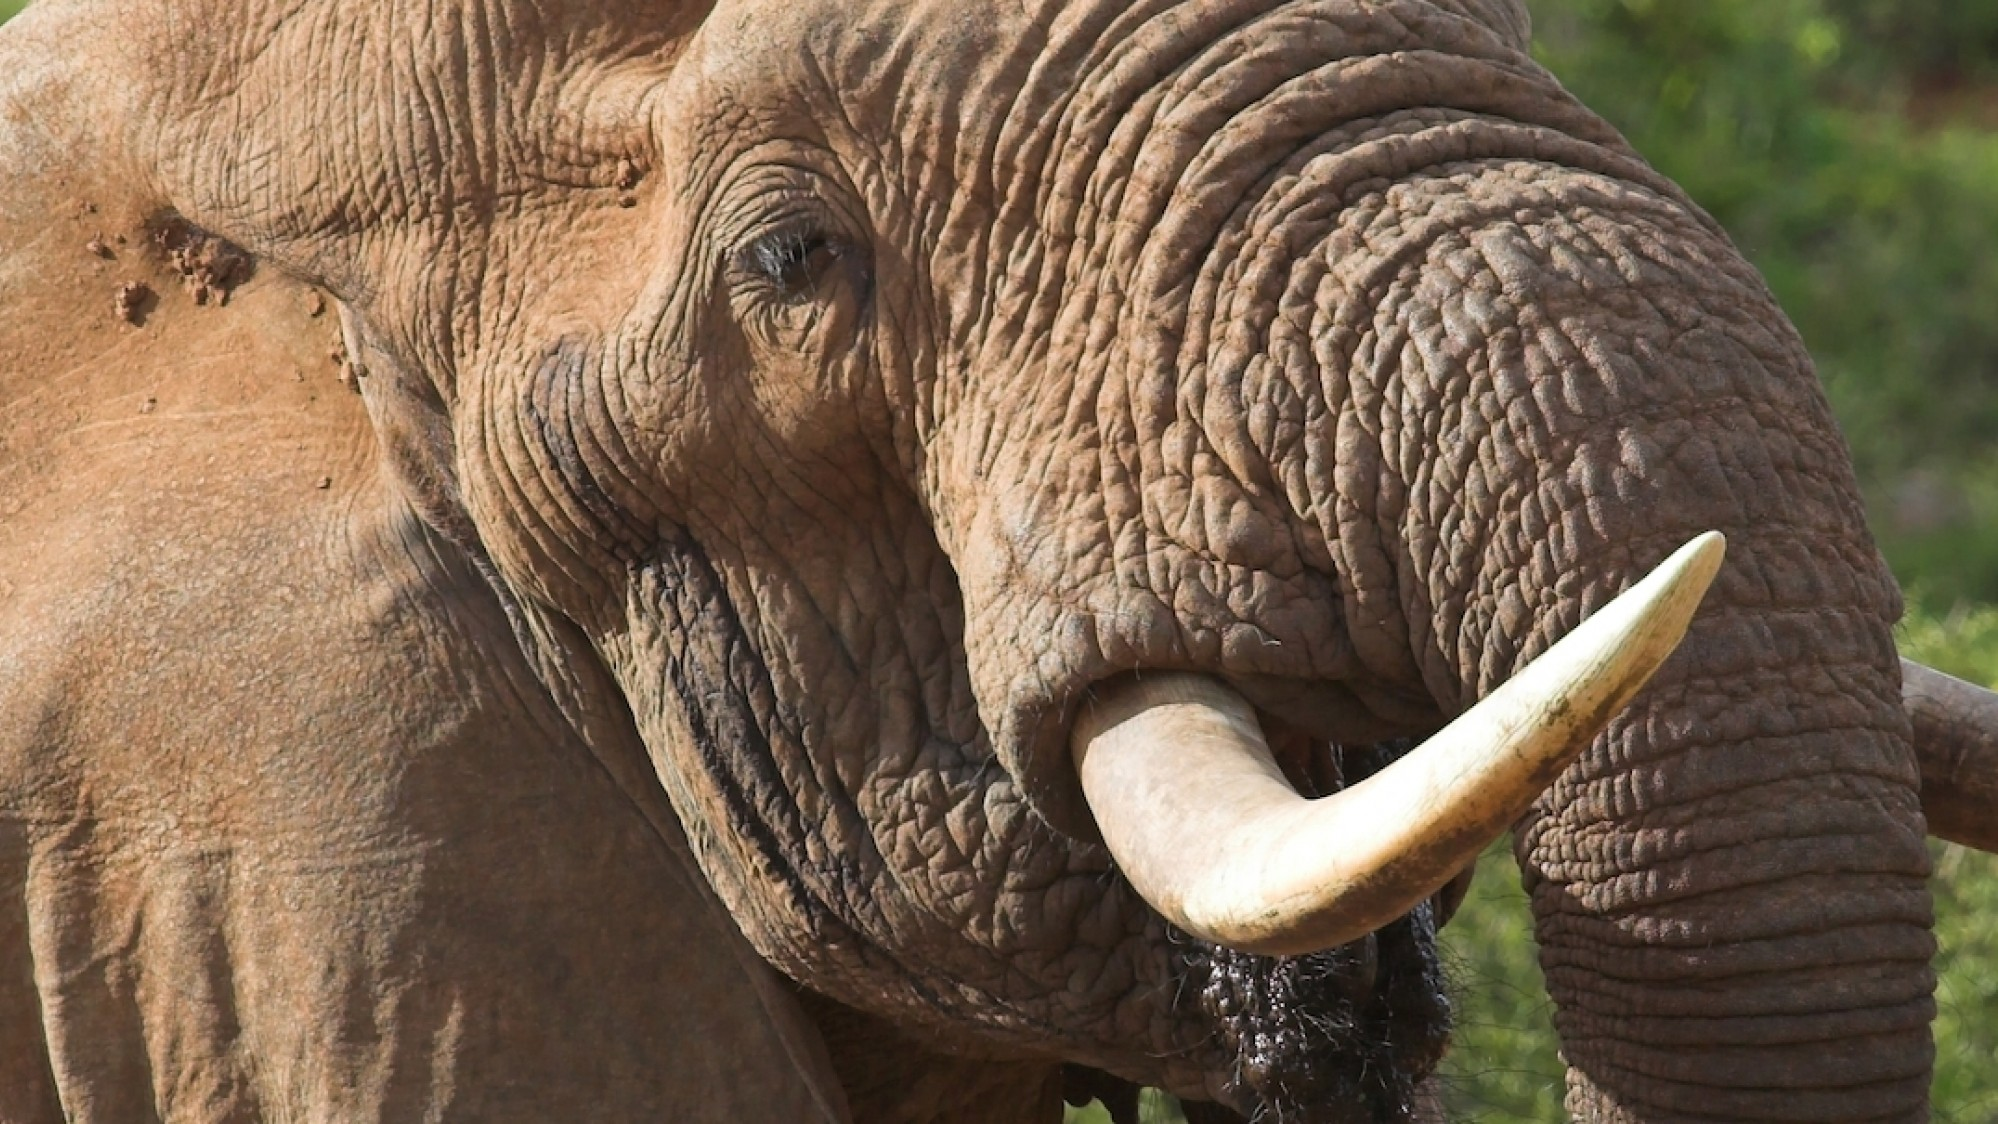 It's Still Really Easy to Buy Illegal Ivory Online